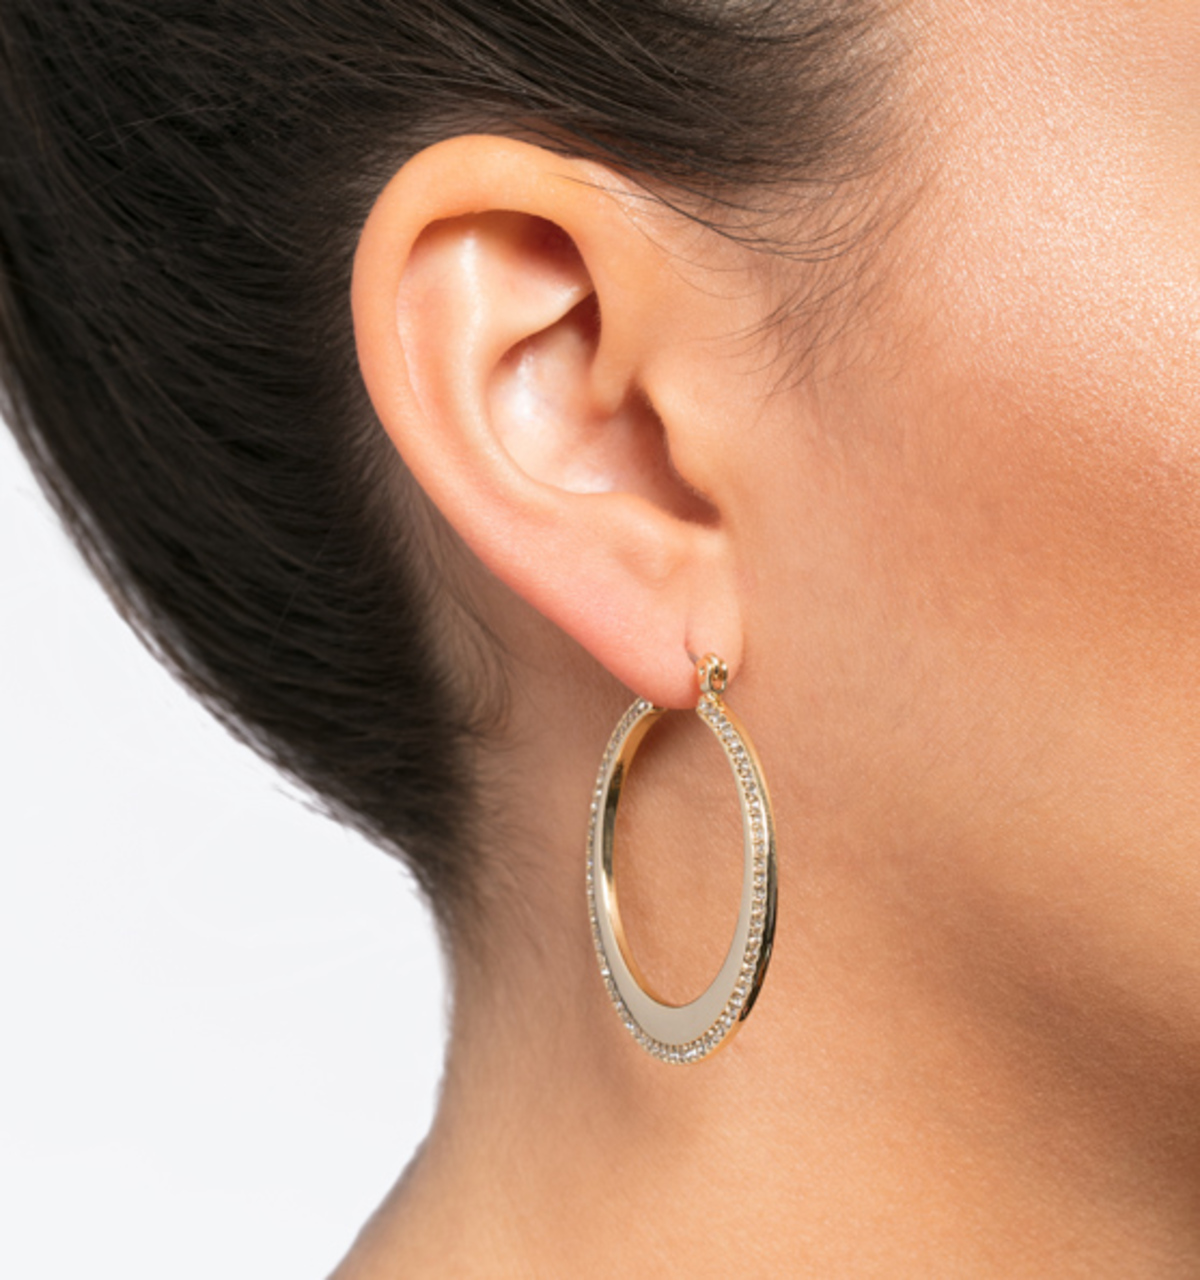 Soho social pave hoop earrings